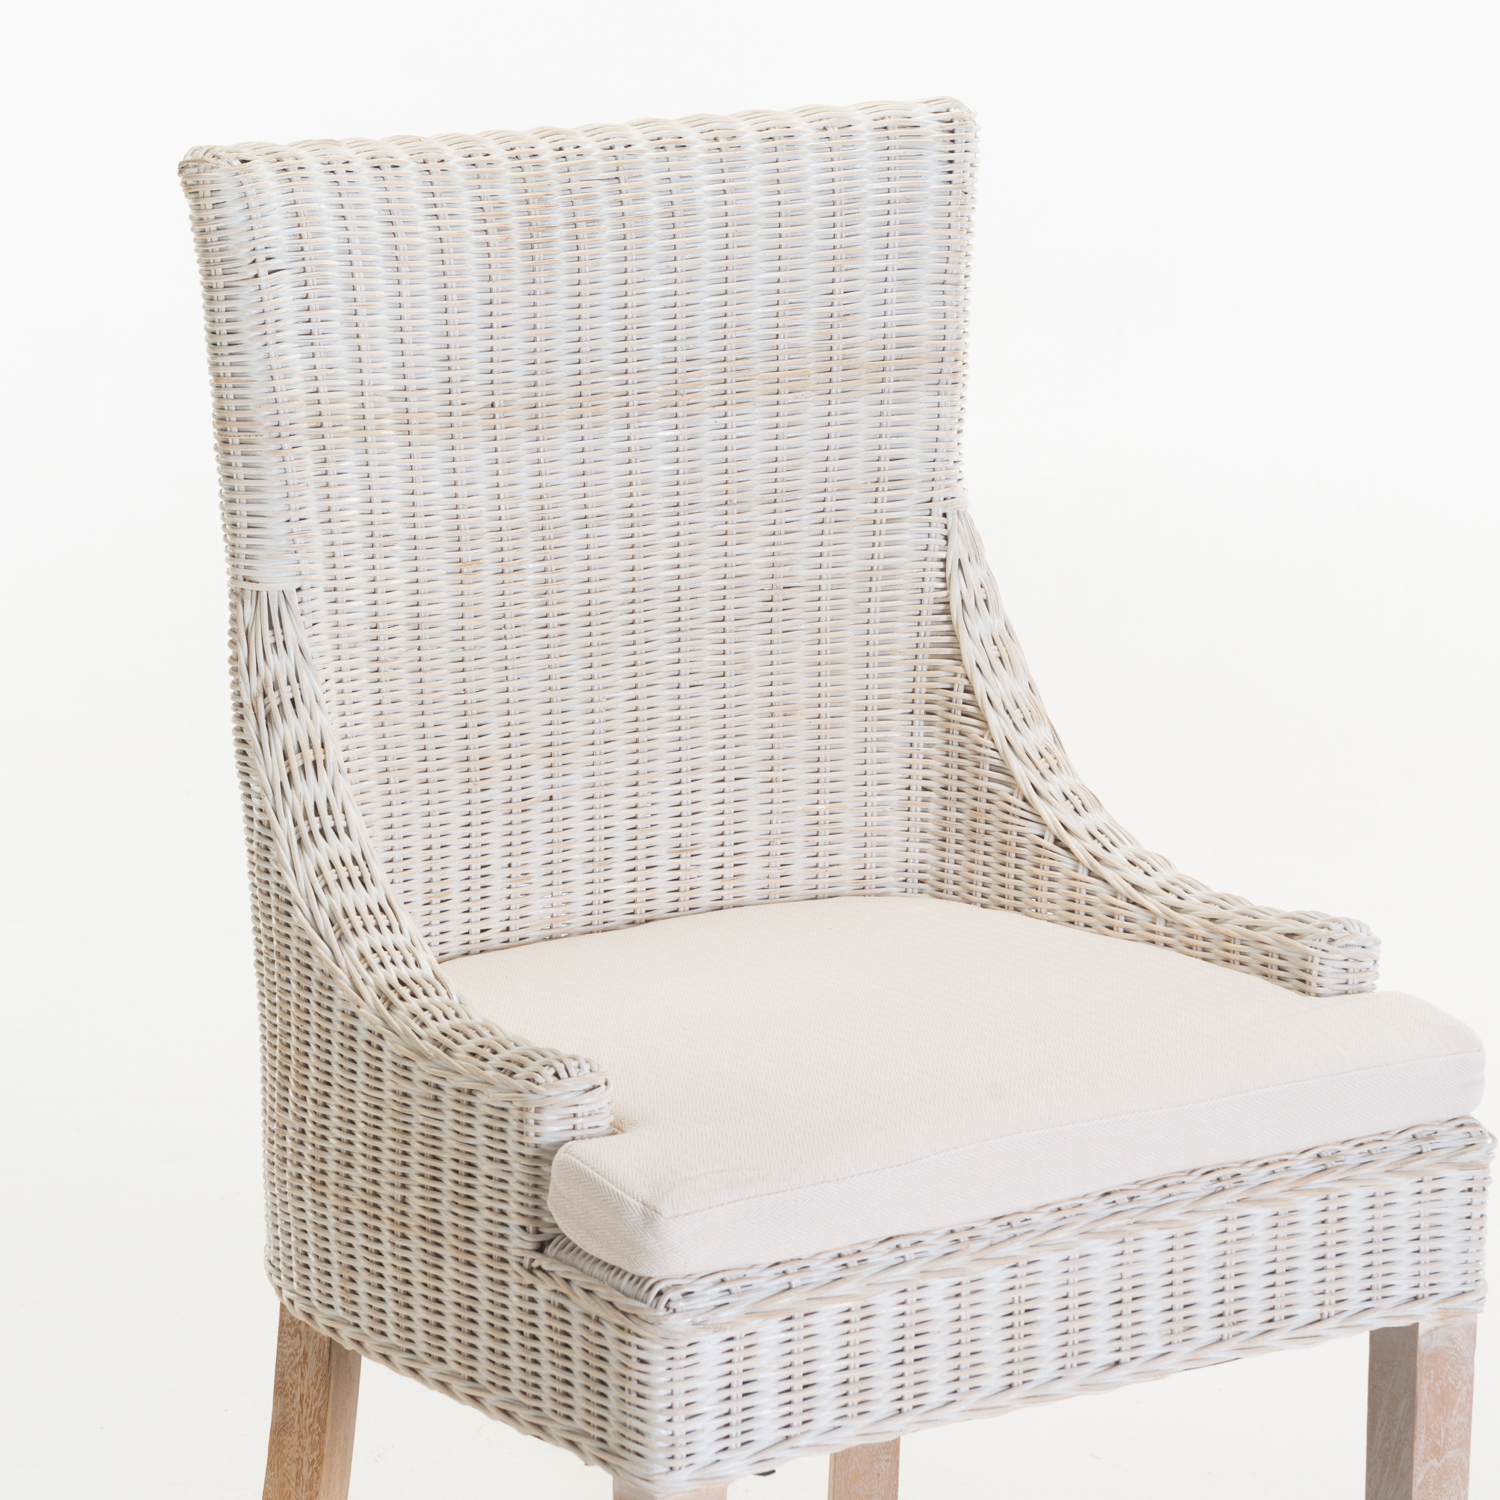 JUNI RATTAN WHITEWASH DINING CHAIR